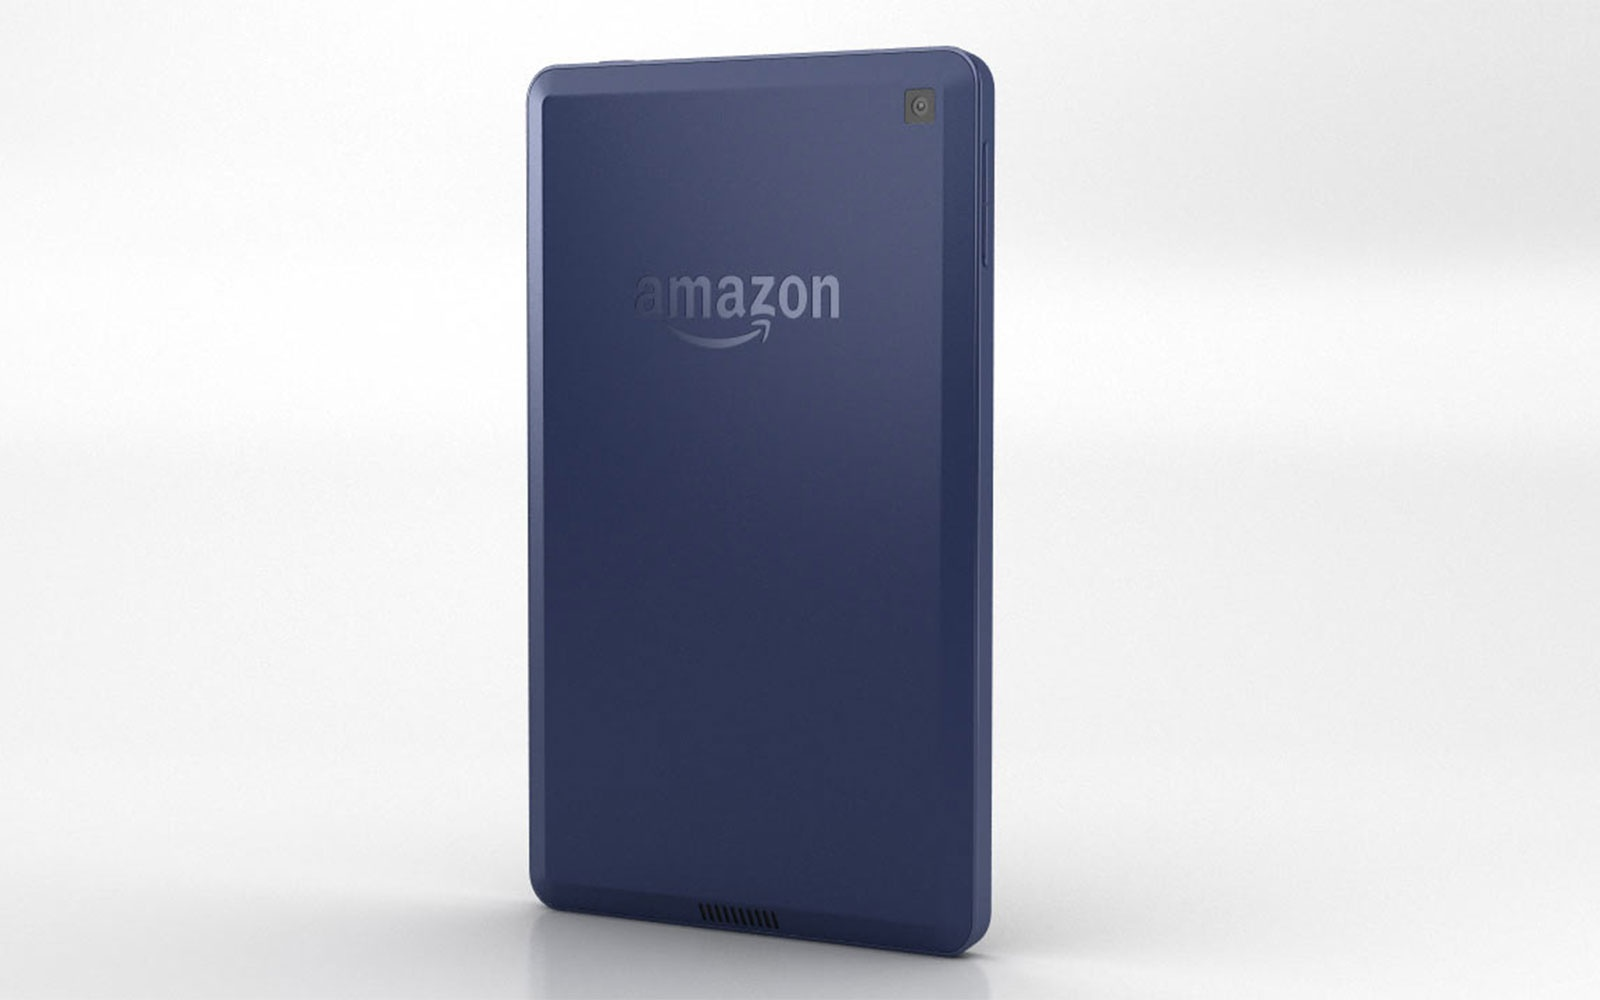 Amazon Fire HD 6 portable tablet